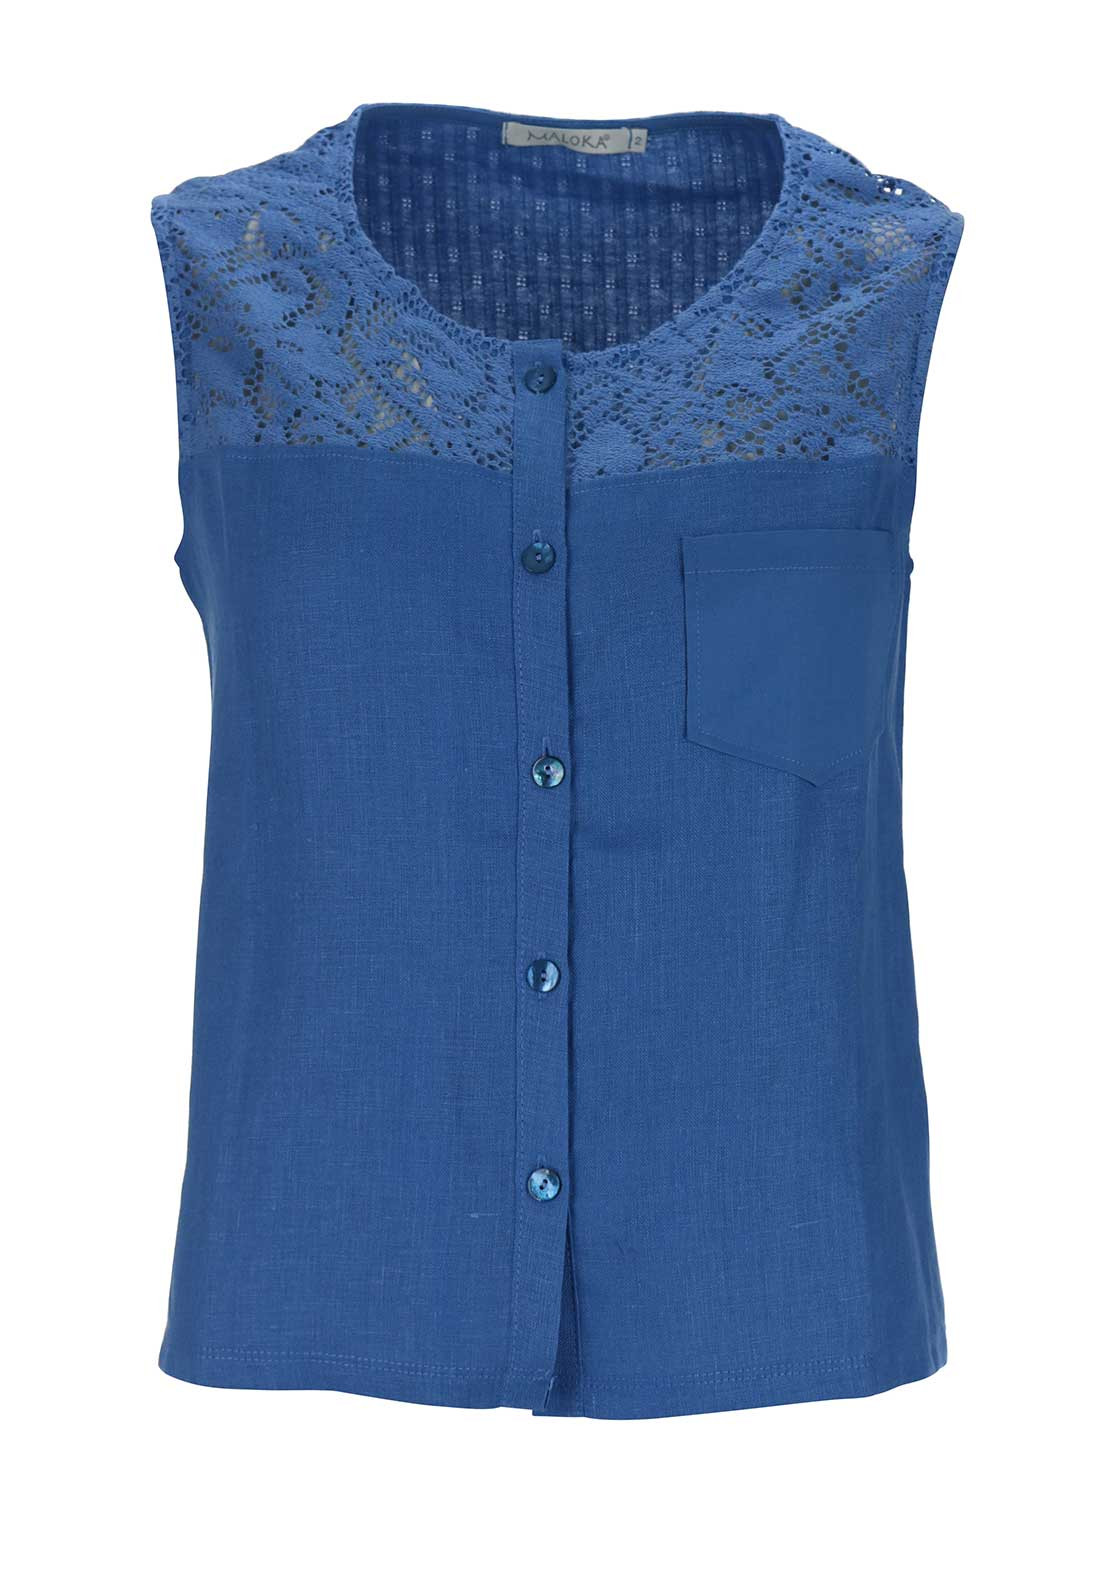 Maloka Amy Crochet Trim Button Through Linen Sleeveless Top, Blue